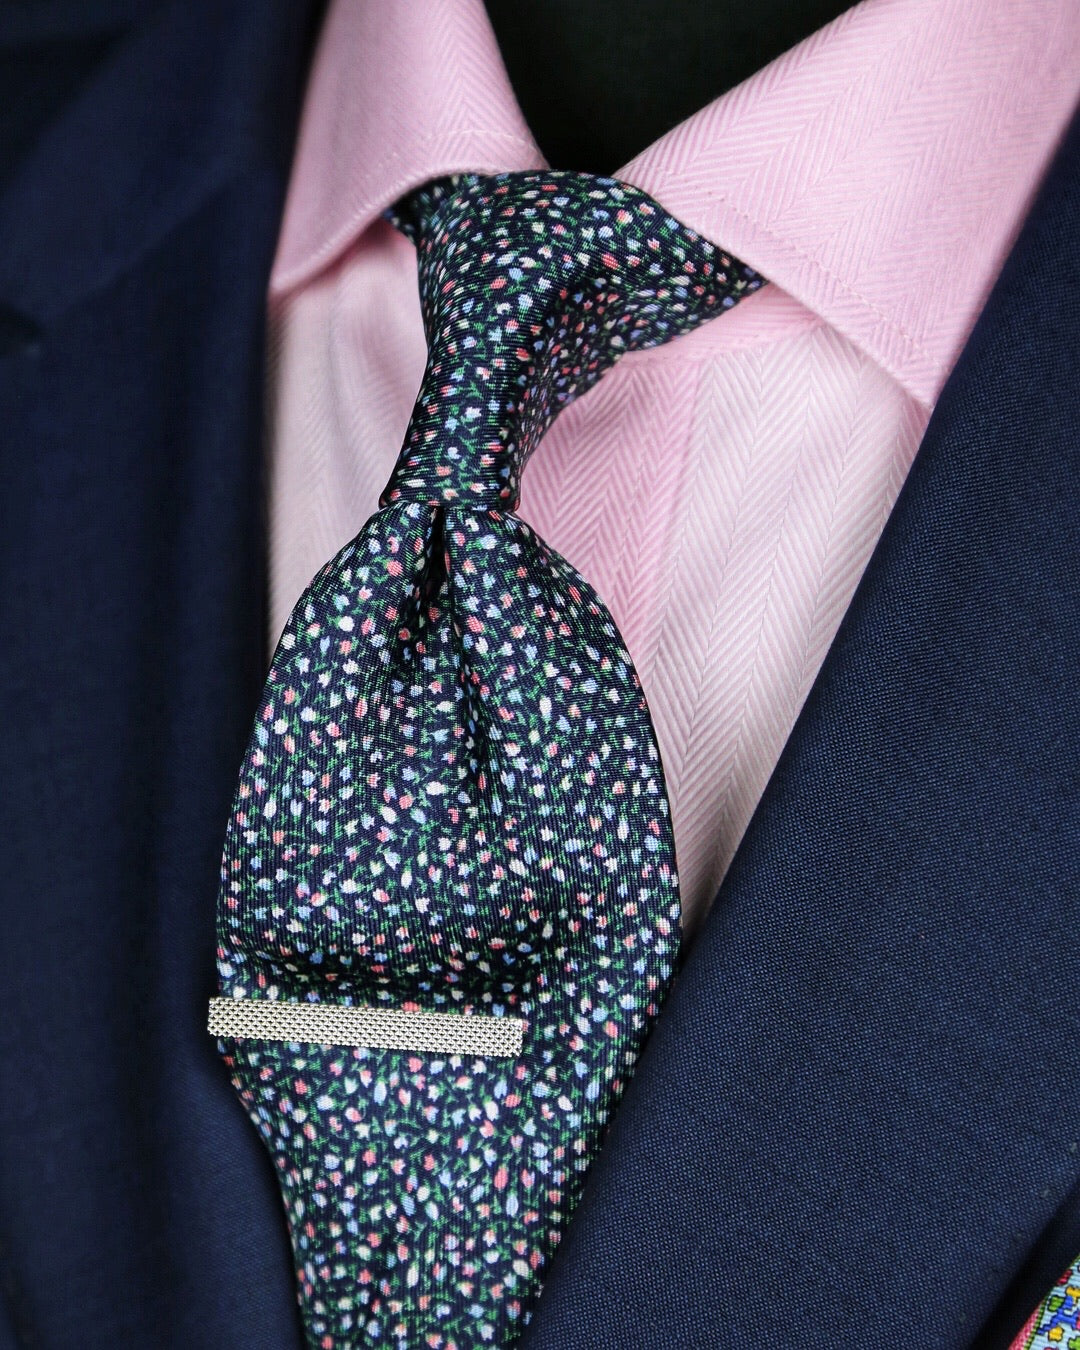 DÉCLIC Auriga Floral Tie - Navy/Assorted